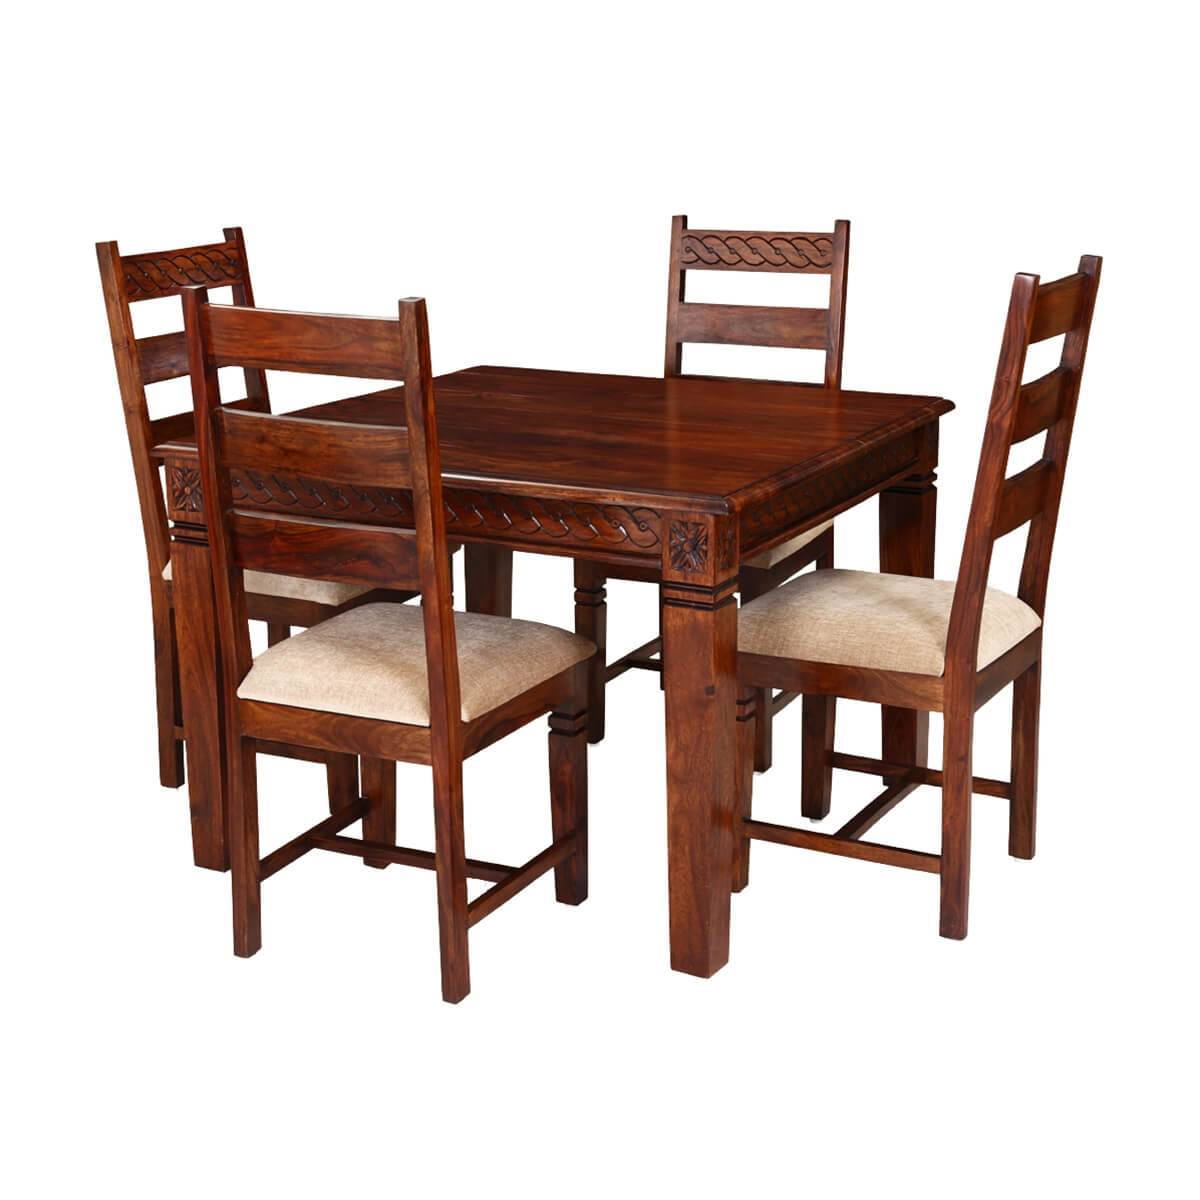 solid wood dining table and chairs gray wicker chair handcrafted 5pc square set